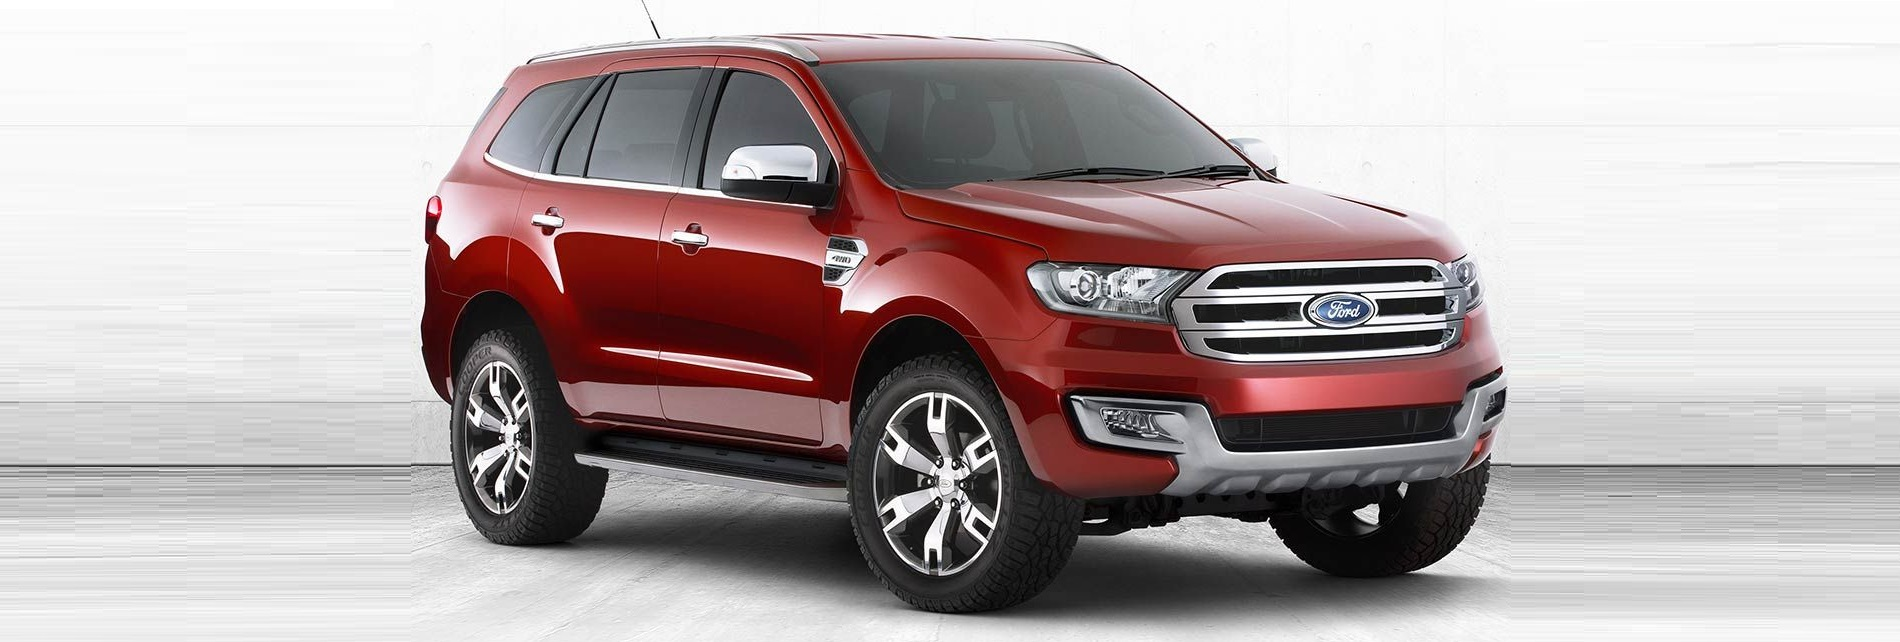 ford endeavour 2015 facelift spied in india